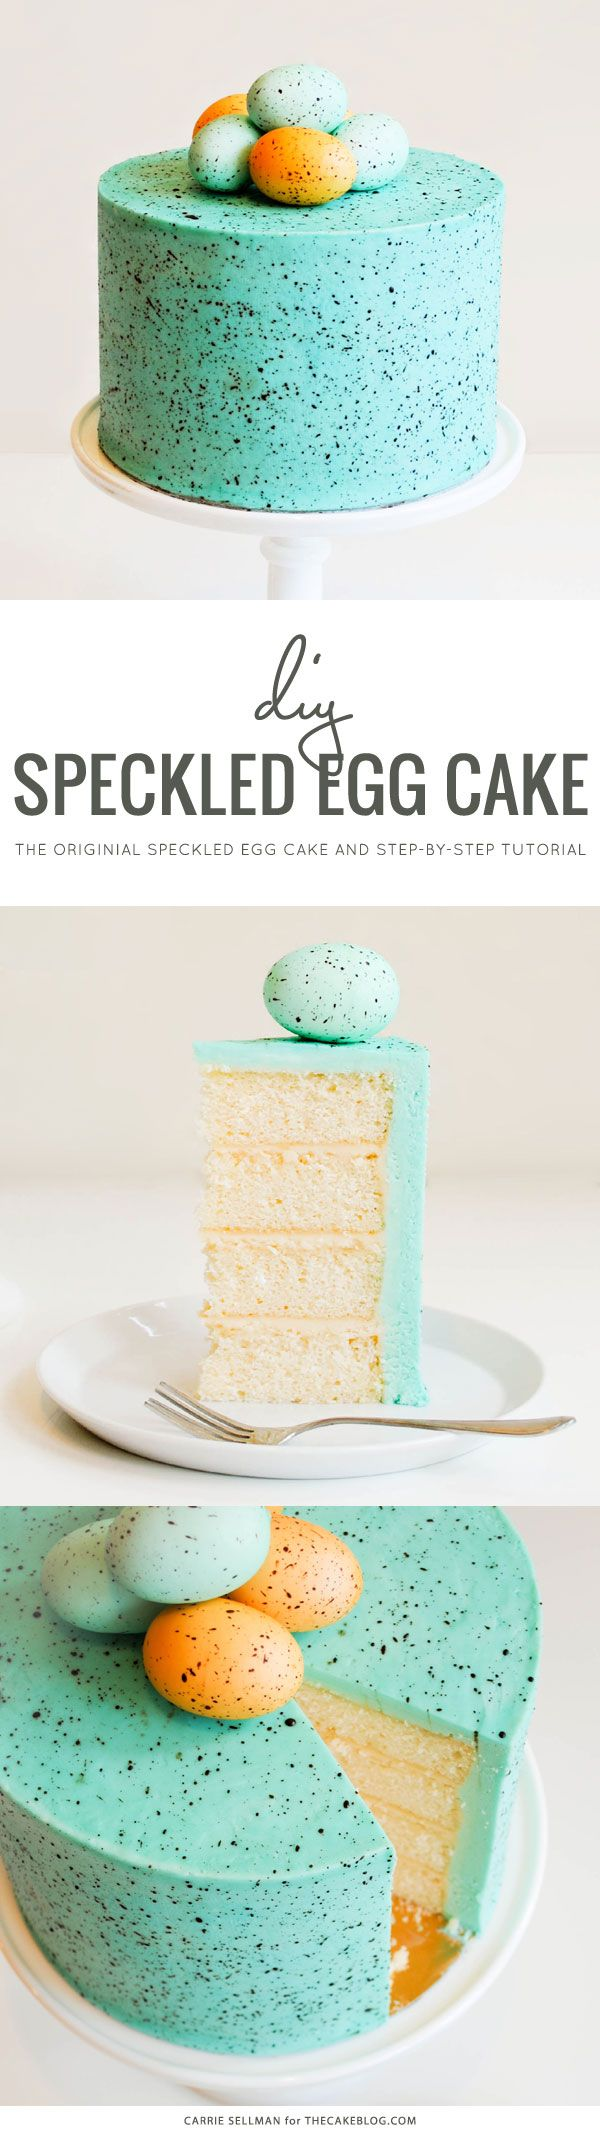 DIY: Speckled Egg Cake